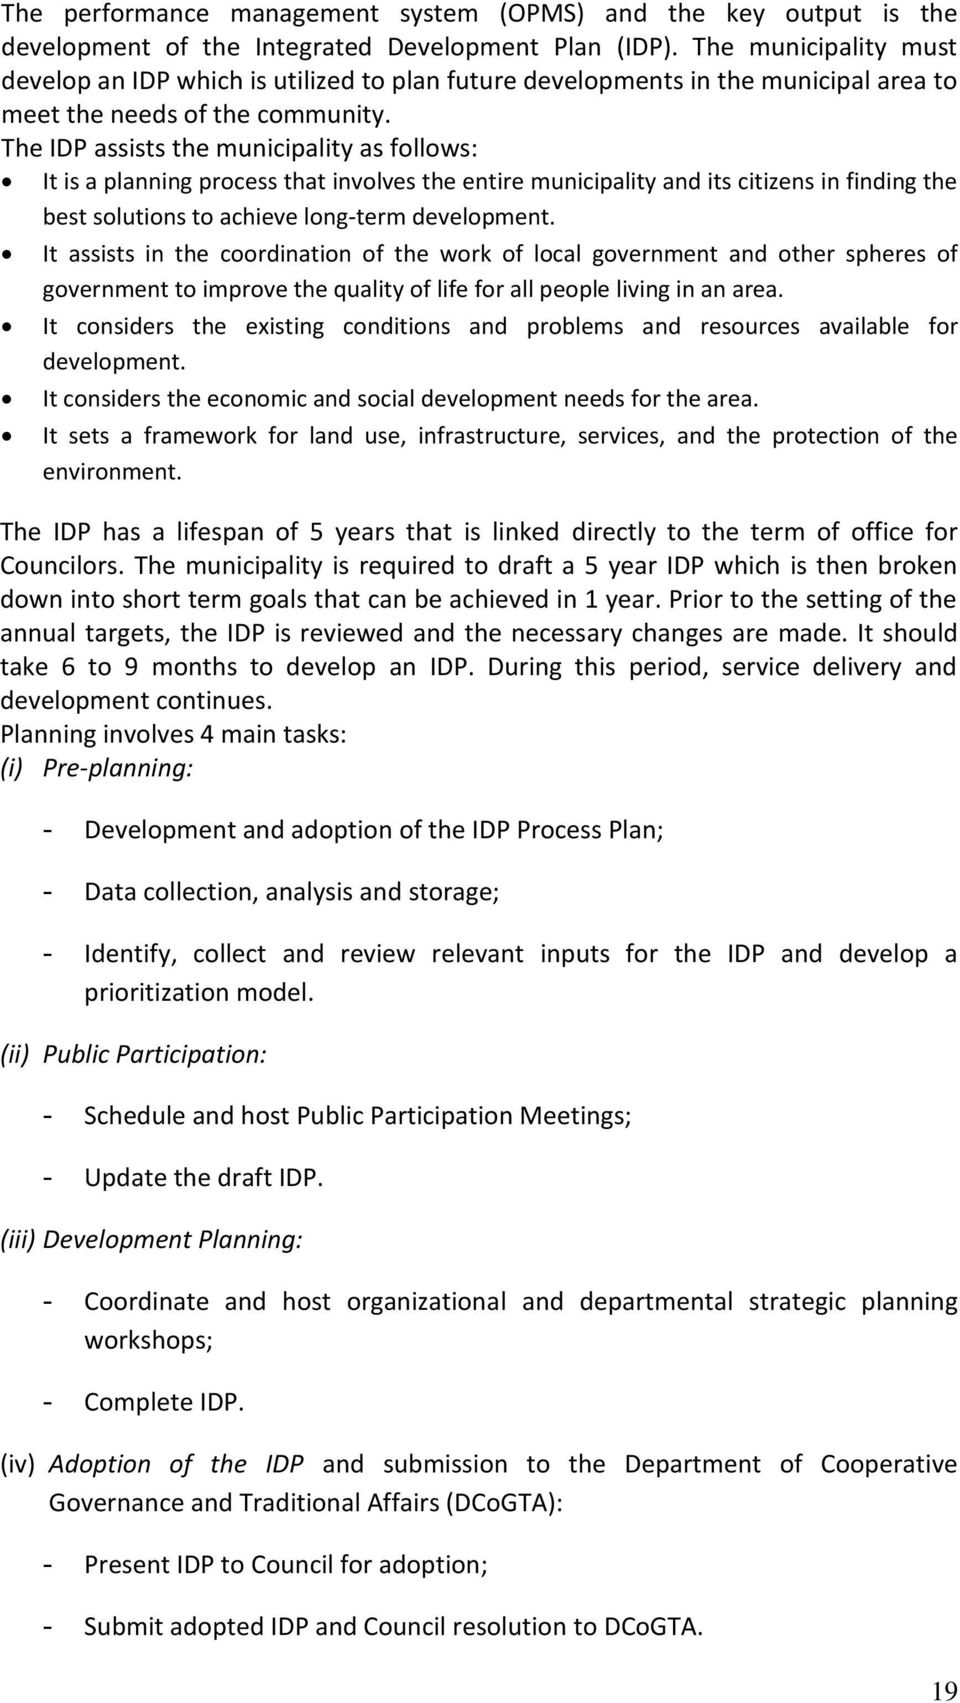 The IDP assists the municipality as follows: It is a planning process that involves the entire municipality and its citizens in finding the best solutions to achieve long-term development.